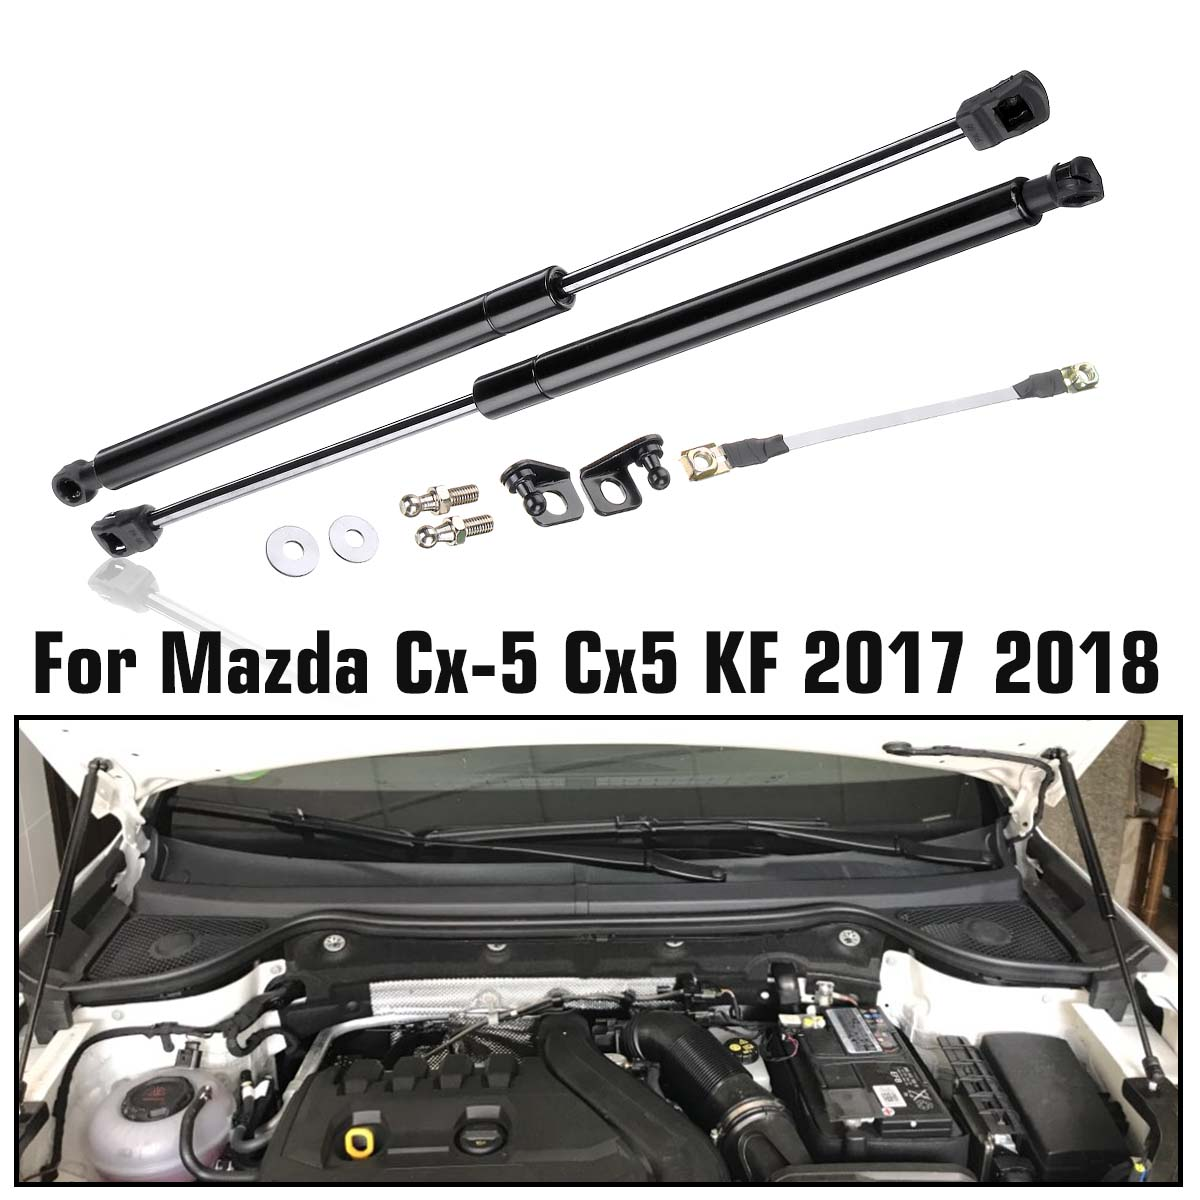 Car Engine Cover Supports Struts Rod Front Bonnet Hood Lift  Hydraulic Rod Strut Spring Shock Bar for Mazda CX5 CX-5 2017 2018